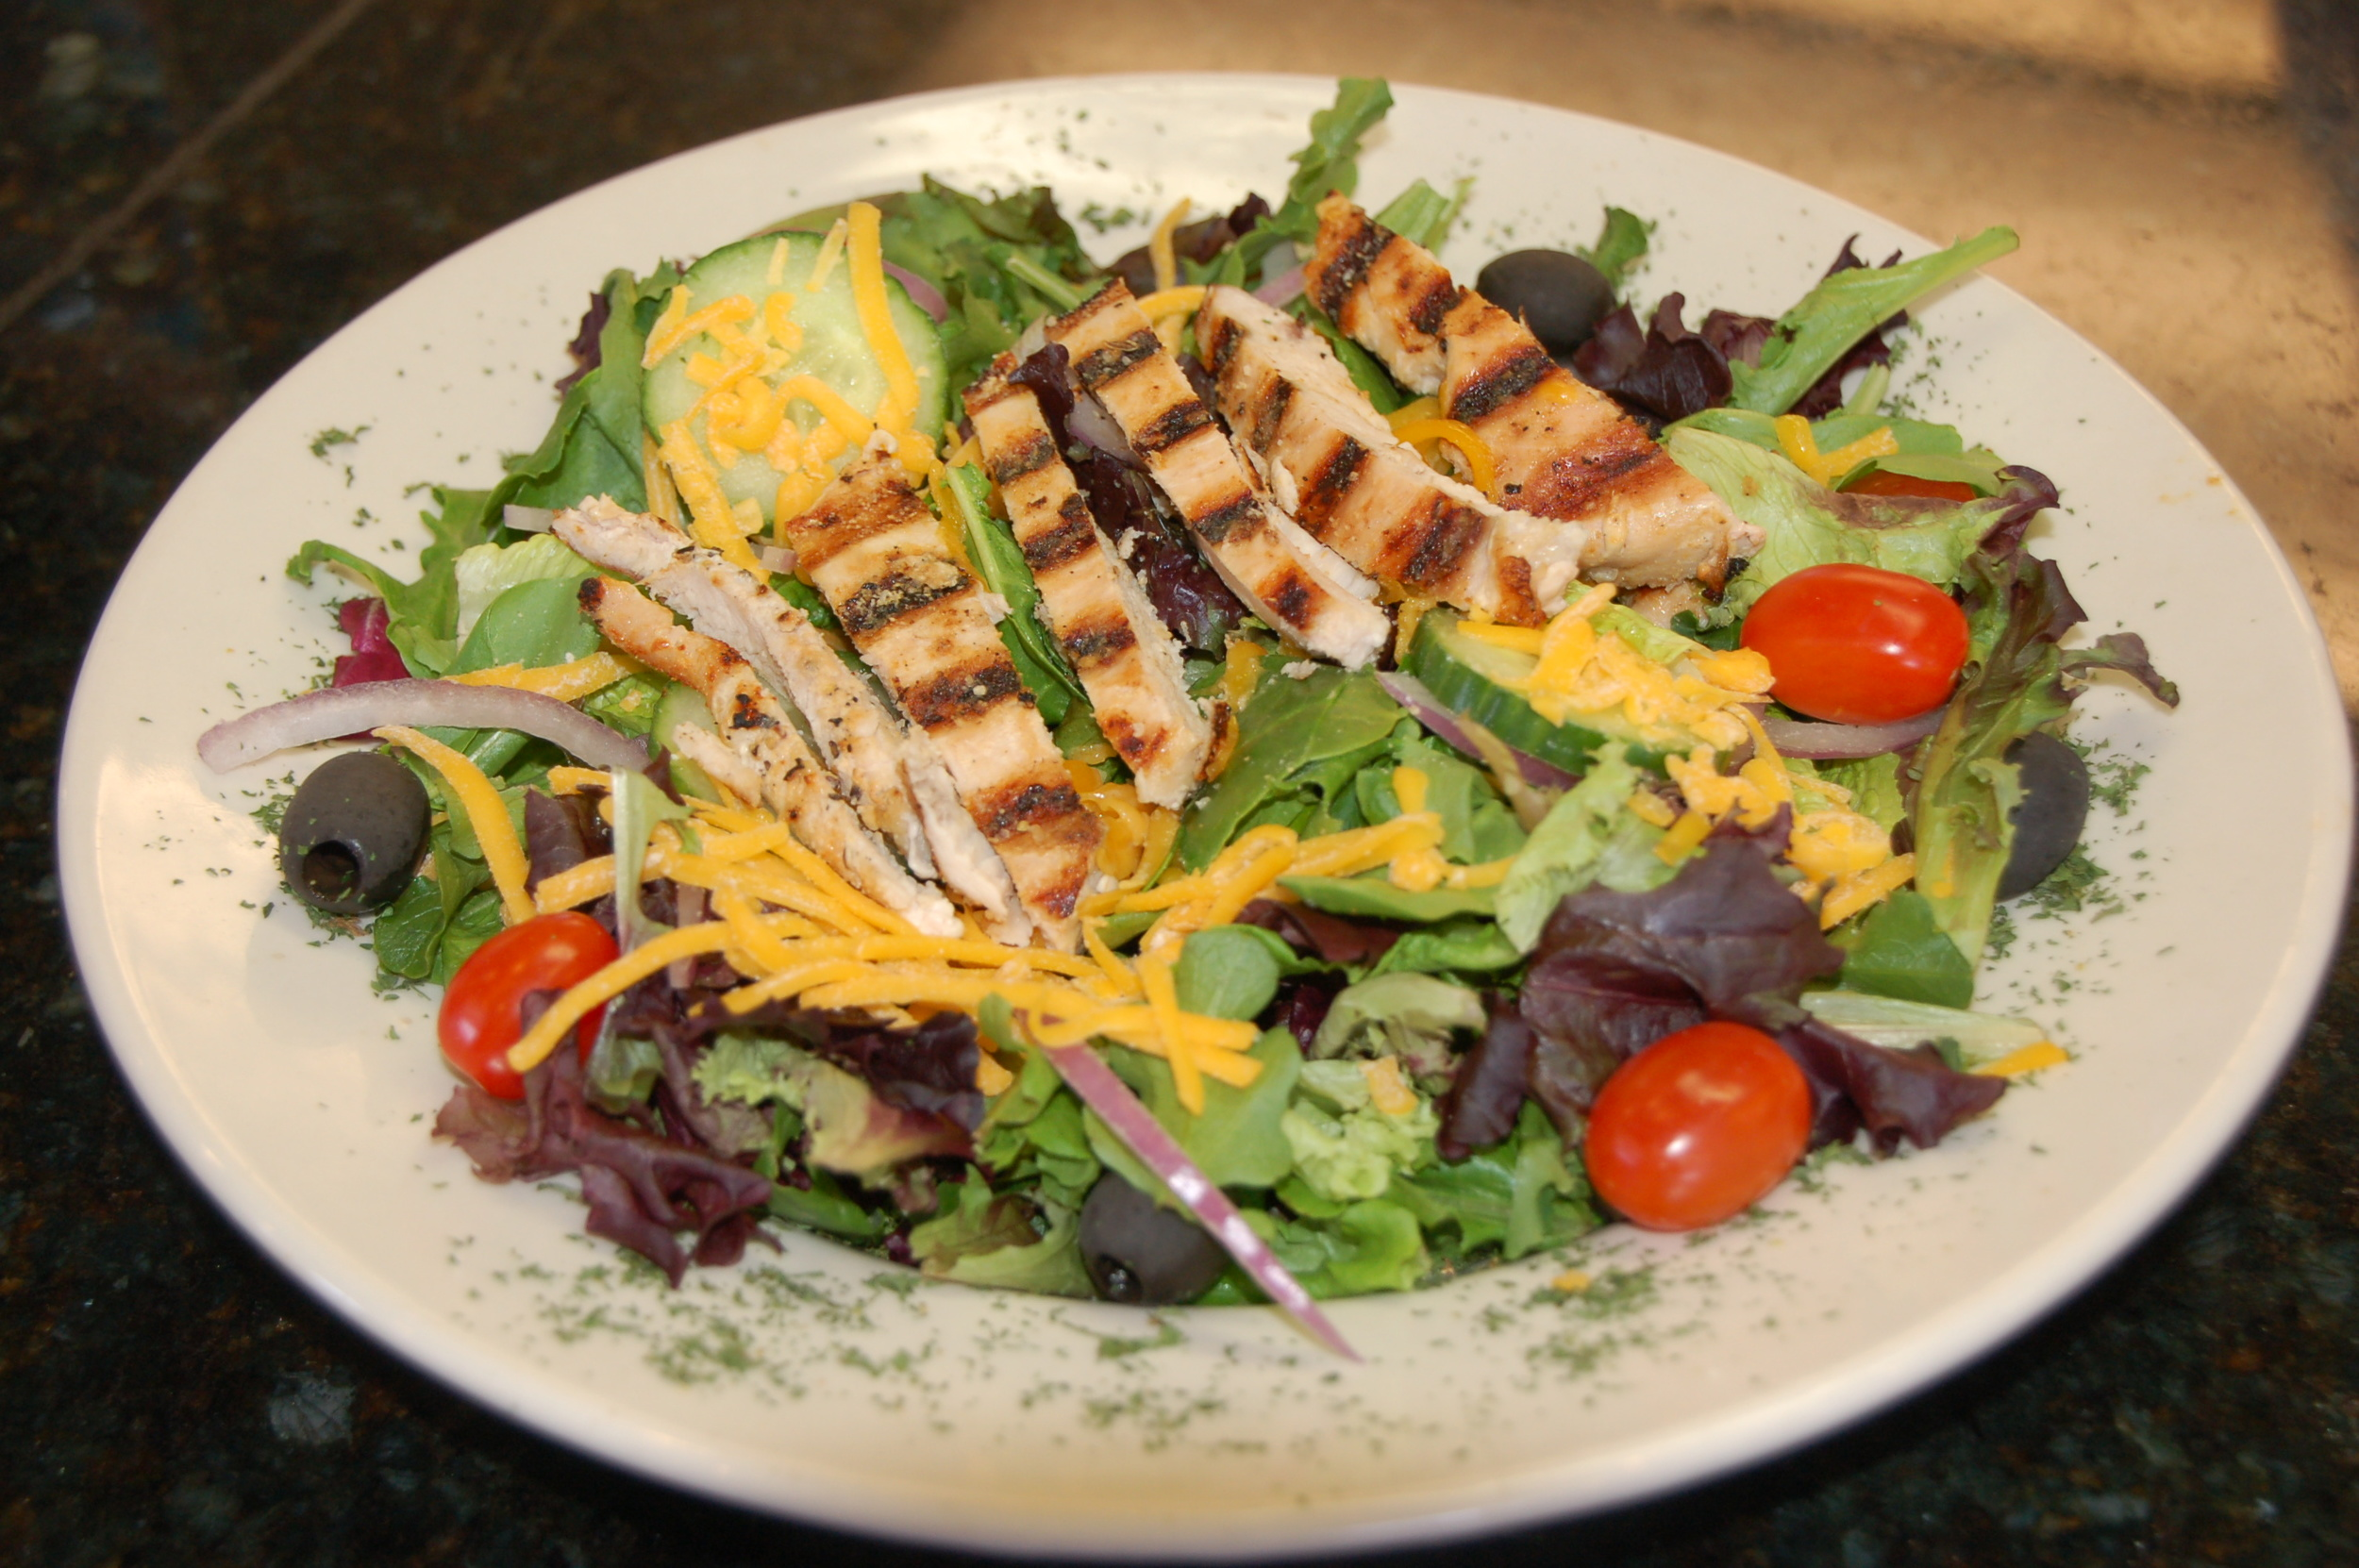 Salad-Grilled-Chicken.jpg